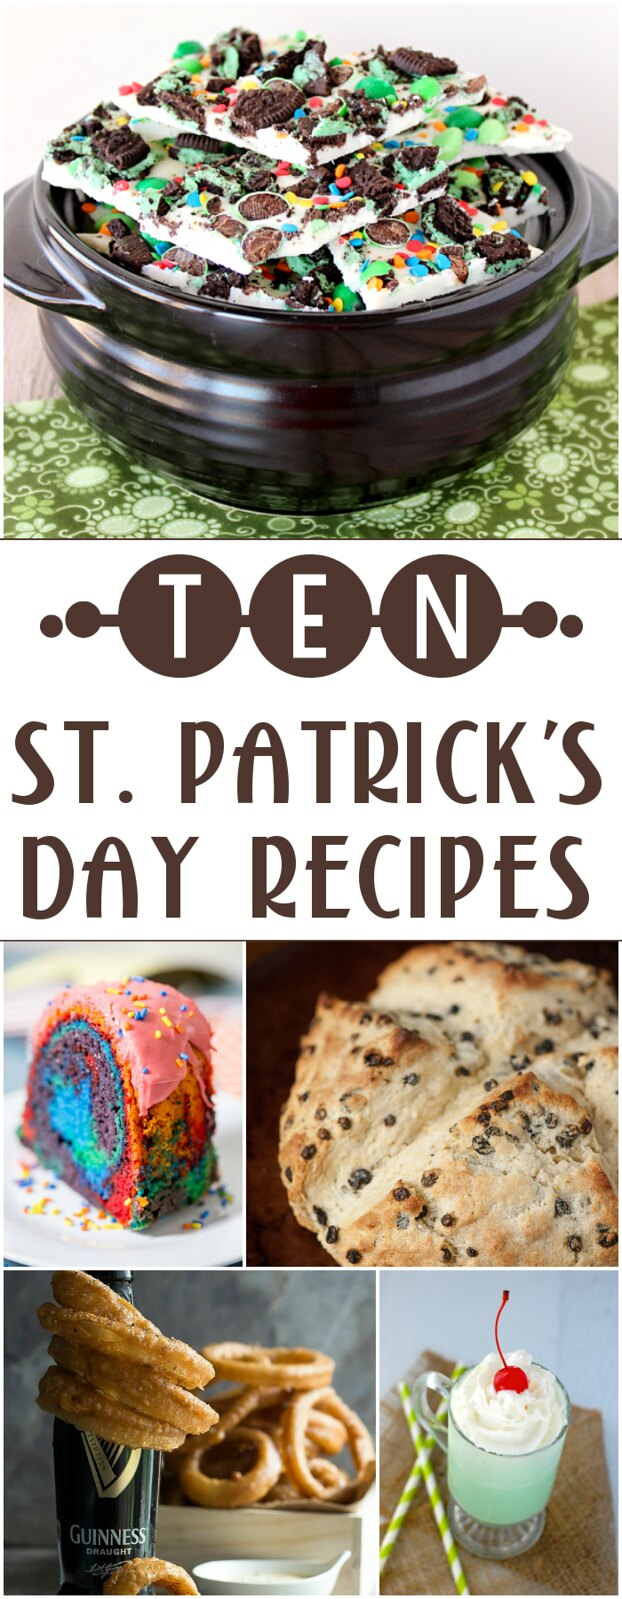 10 St. Patrick's Day Recipes!